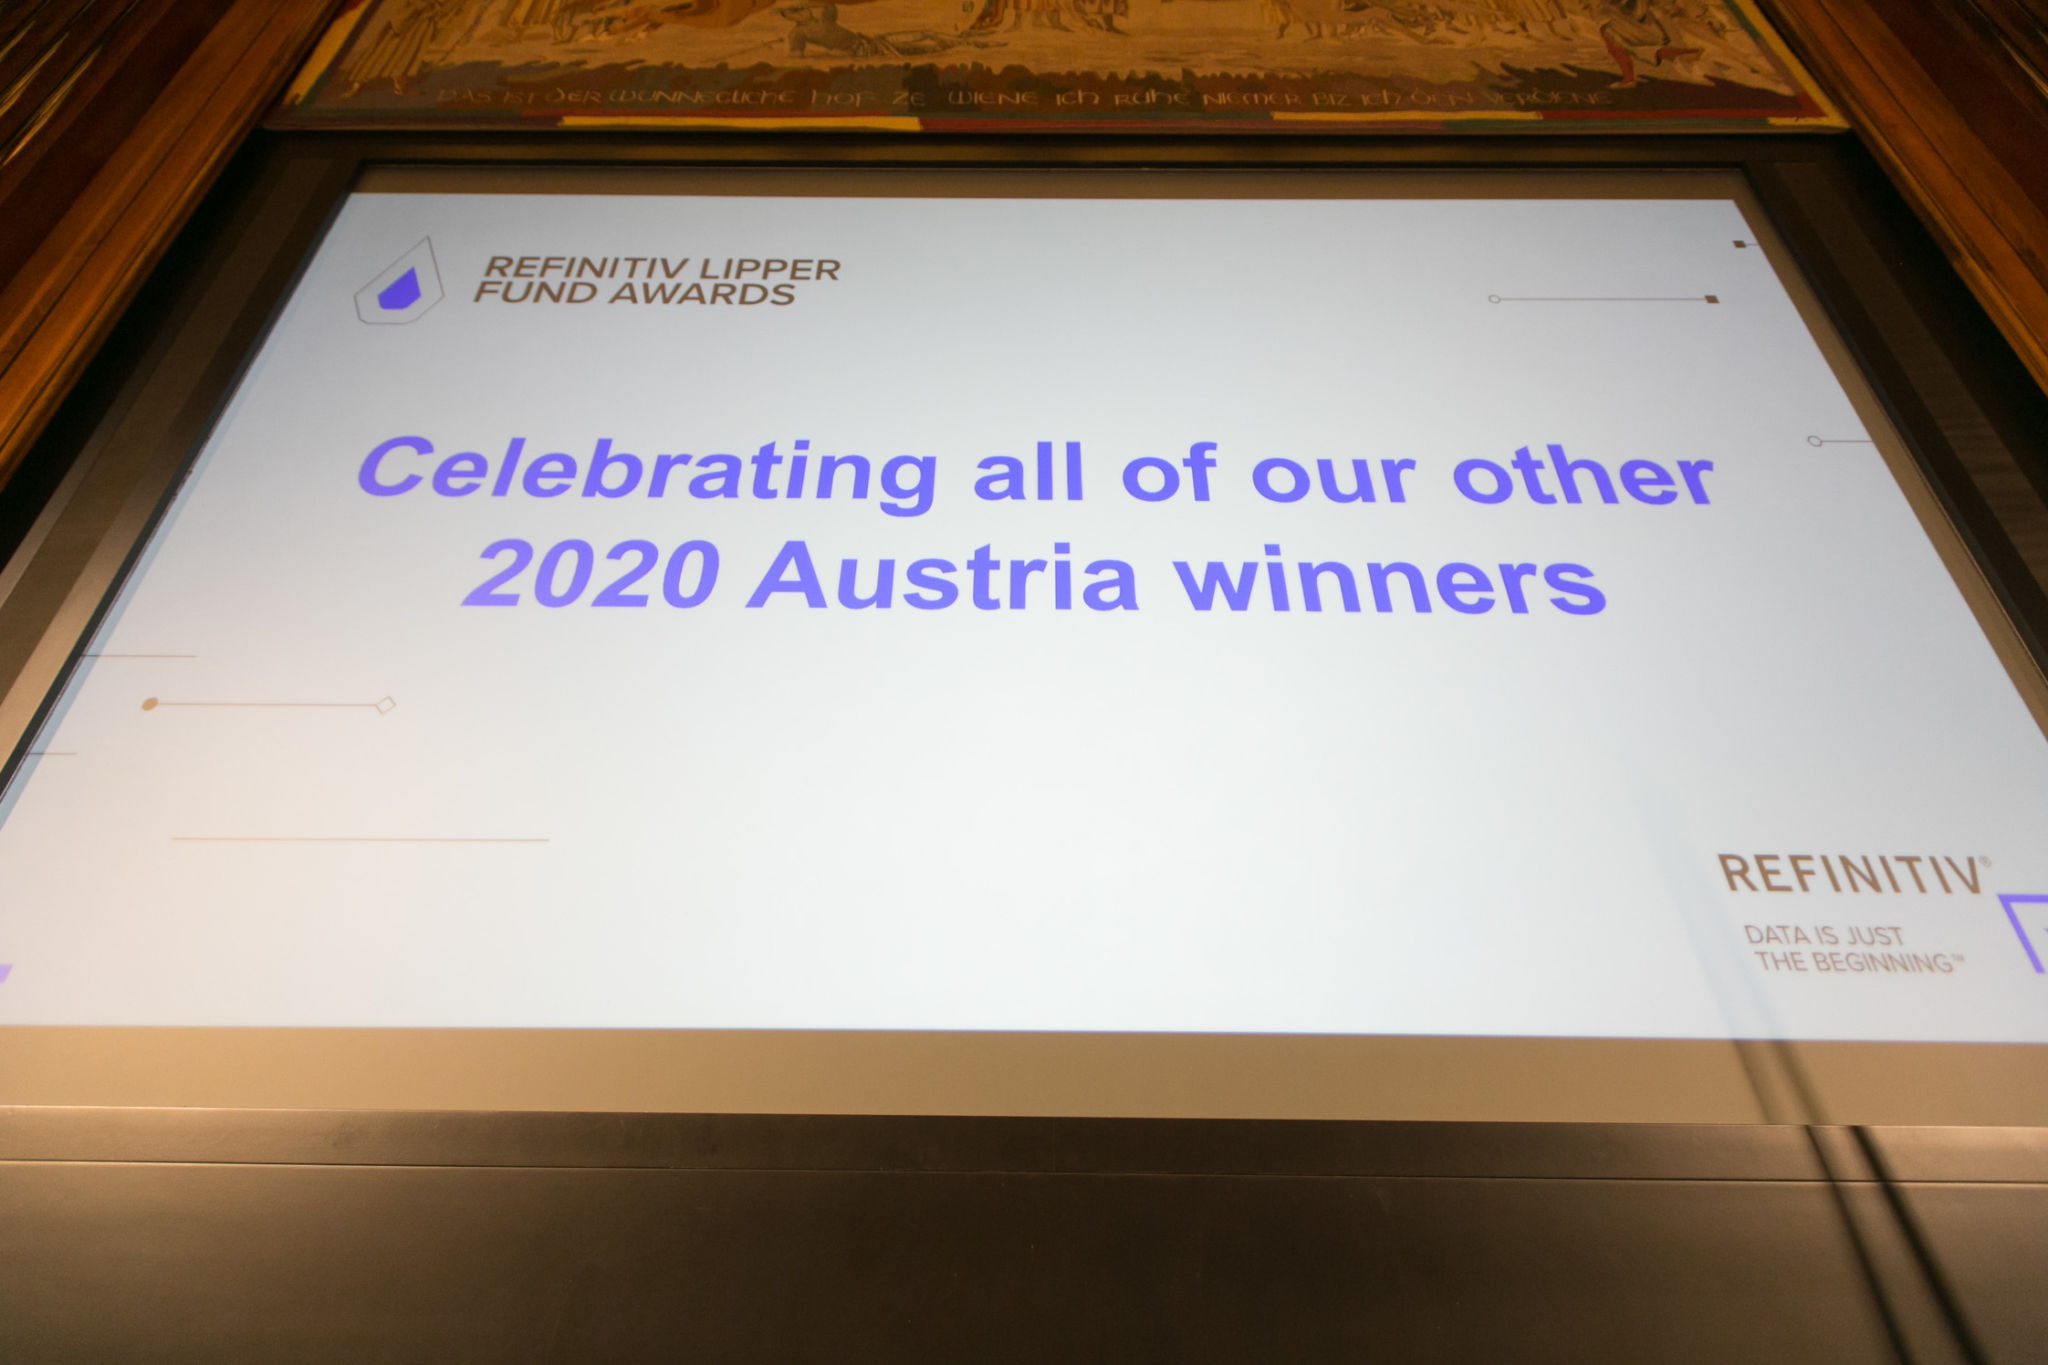 Projection of a message congratulating all of the Austria winners from Refinitiv's Lipper Fund Awards 2020